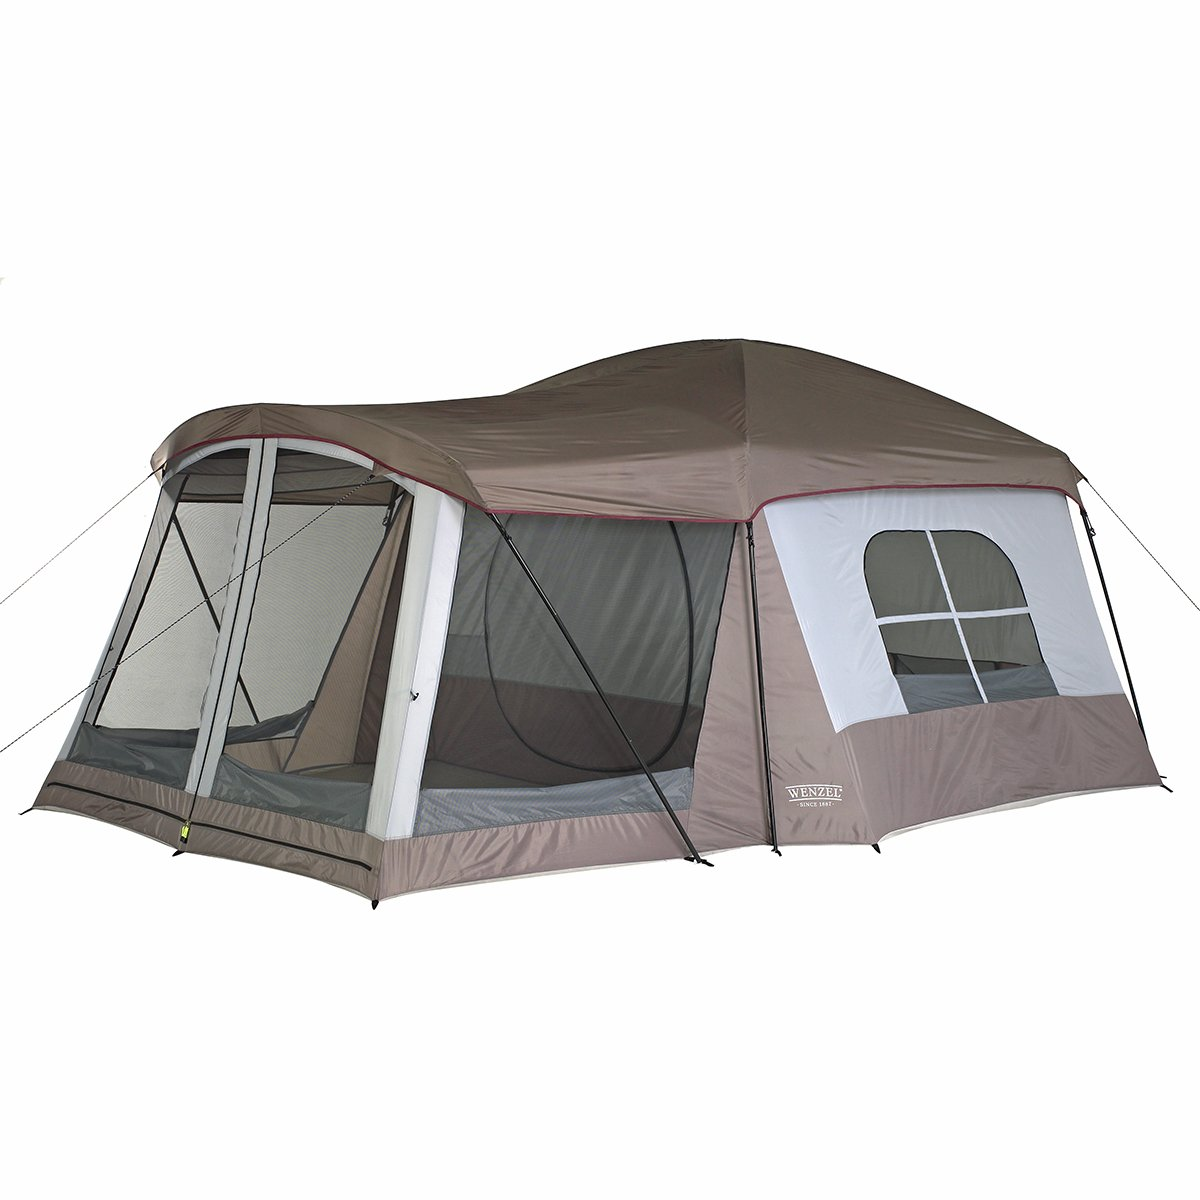 Wenzel Klondike Tent 16X11 Large 8 Person Family Cabin Dome C&ing Screen Hunt  sc 1 st  eBay & Wenzel Klondike Tent 16X11 Large 8 Person Family Cabin Dome ...